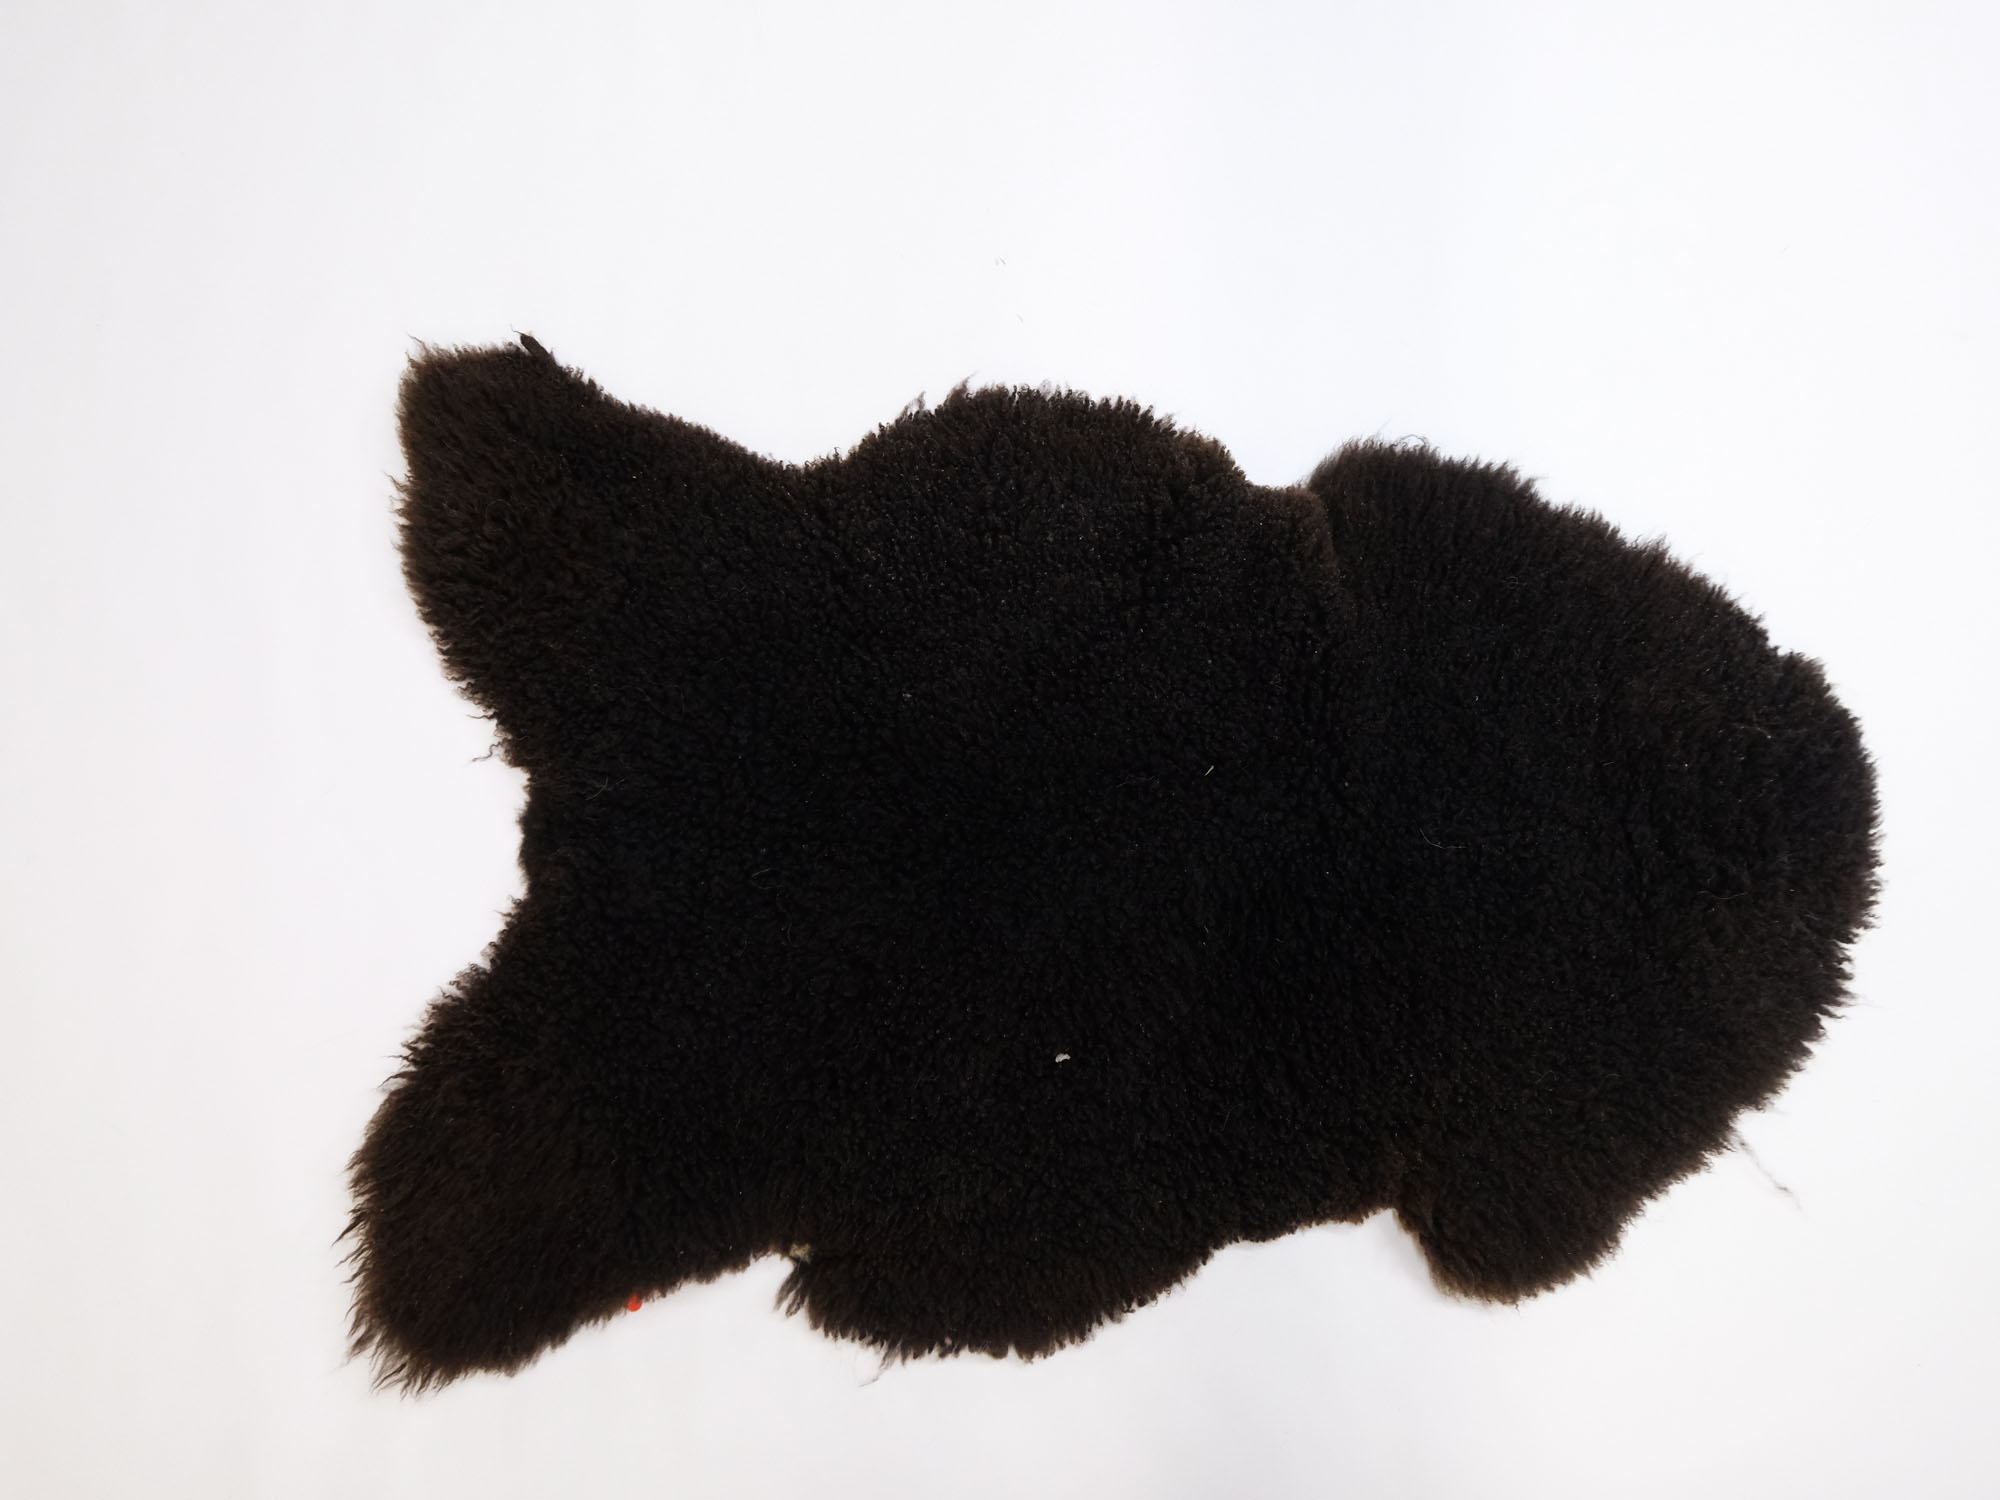 Natural Curly Swedish Sheepskin: 110-120cm: Gallery Item